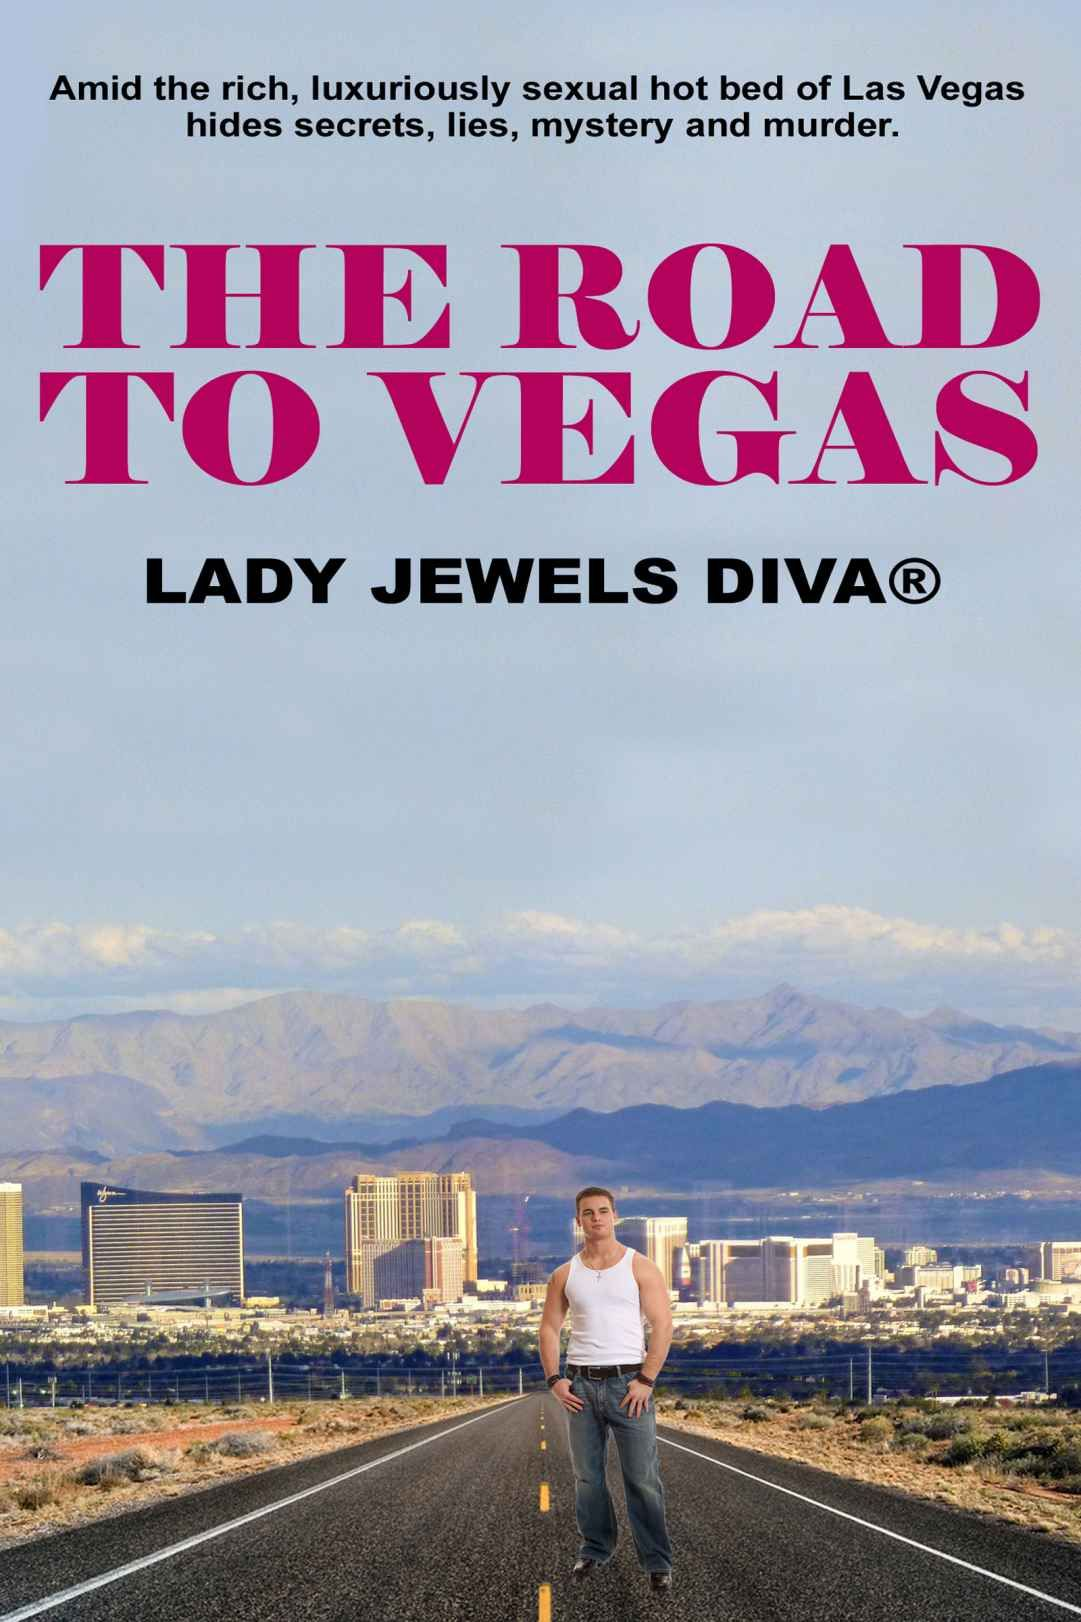 COVER 1 - The Road To Vegas - http://www.amazon.com/author/ladyjewelsdiva -#ladyjewelsdiva #author #writer #novelist #paperbackbook #kindleebook #theroadtovegas